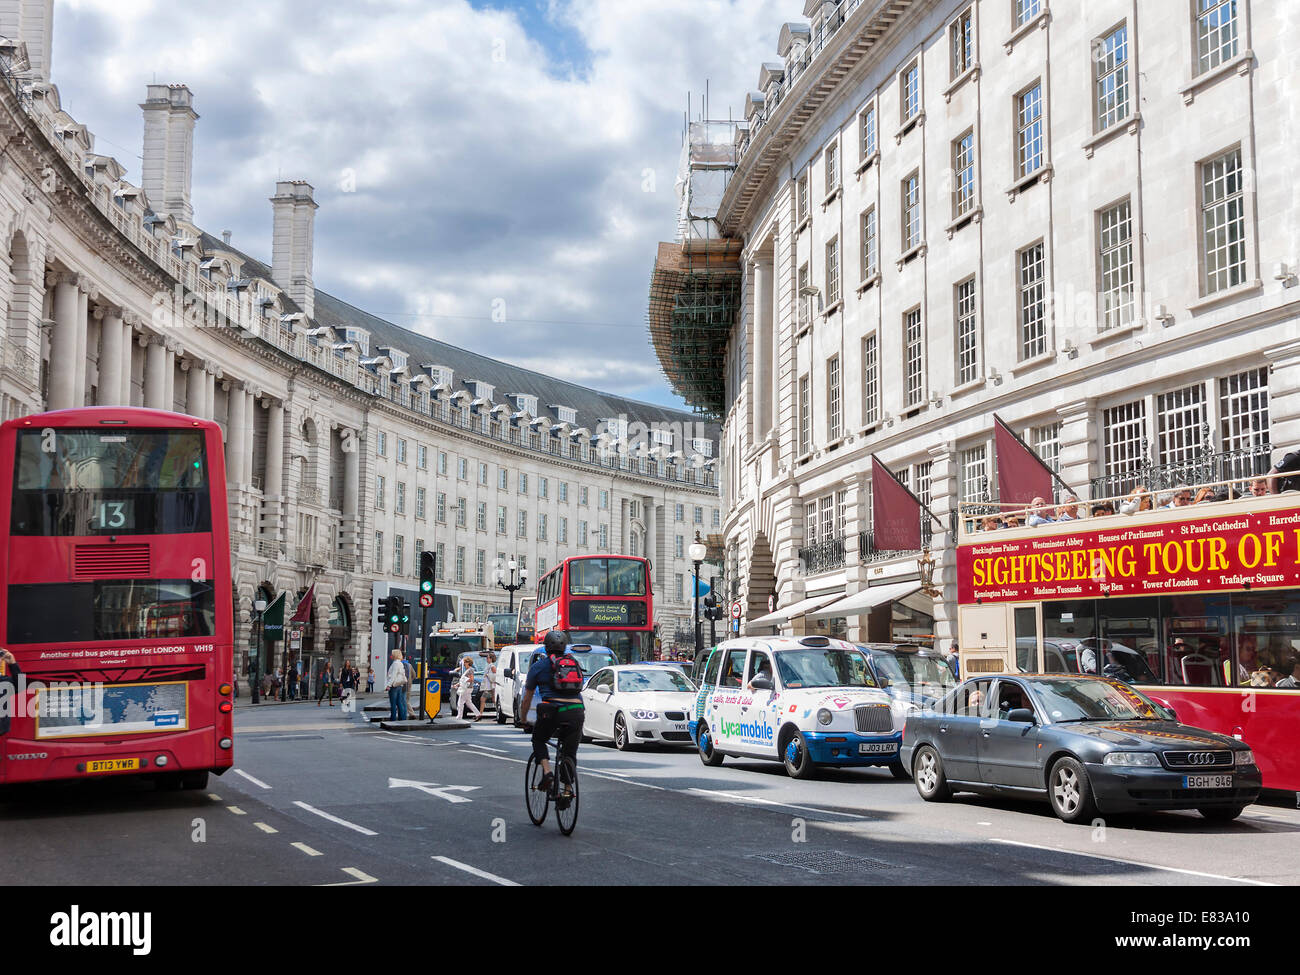 Typical double decker bus in Regent street  in London. Regent Street is one of the major shopping streets in Europe - Stock Image